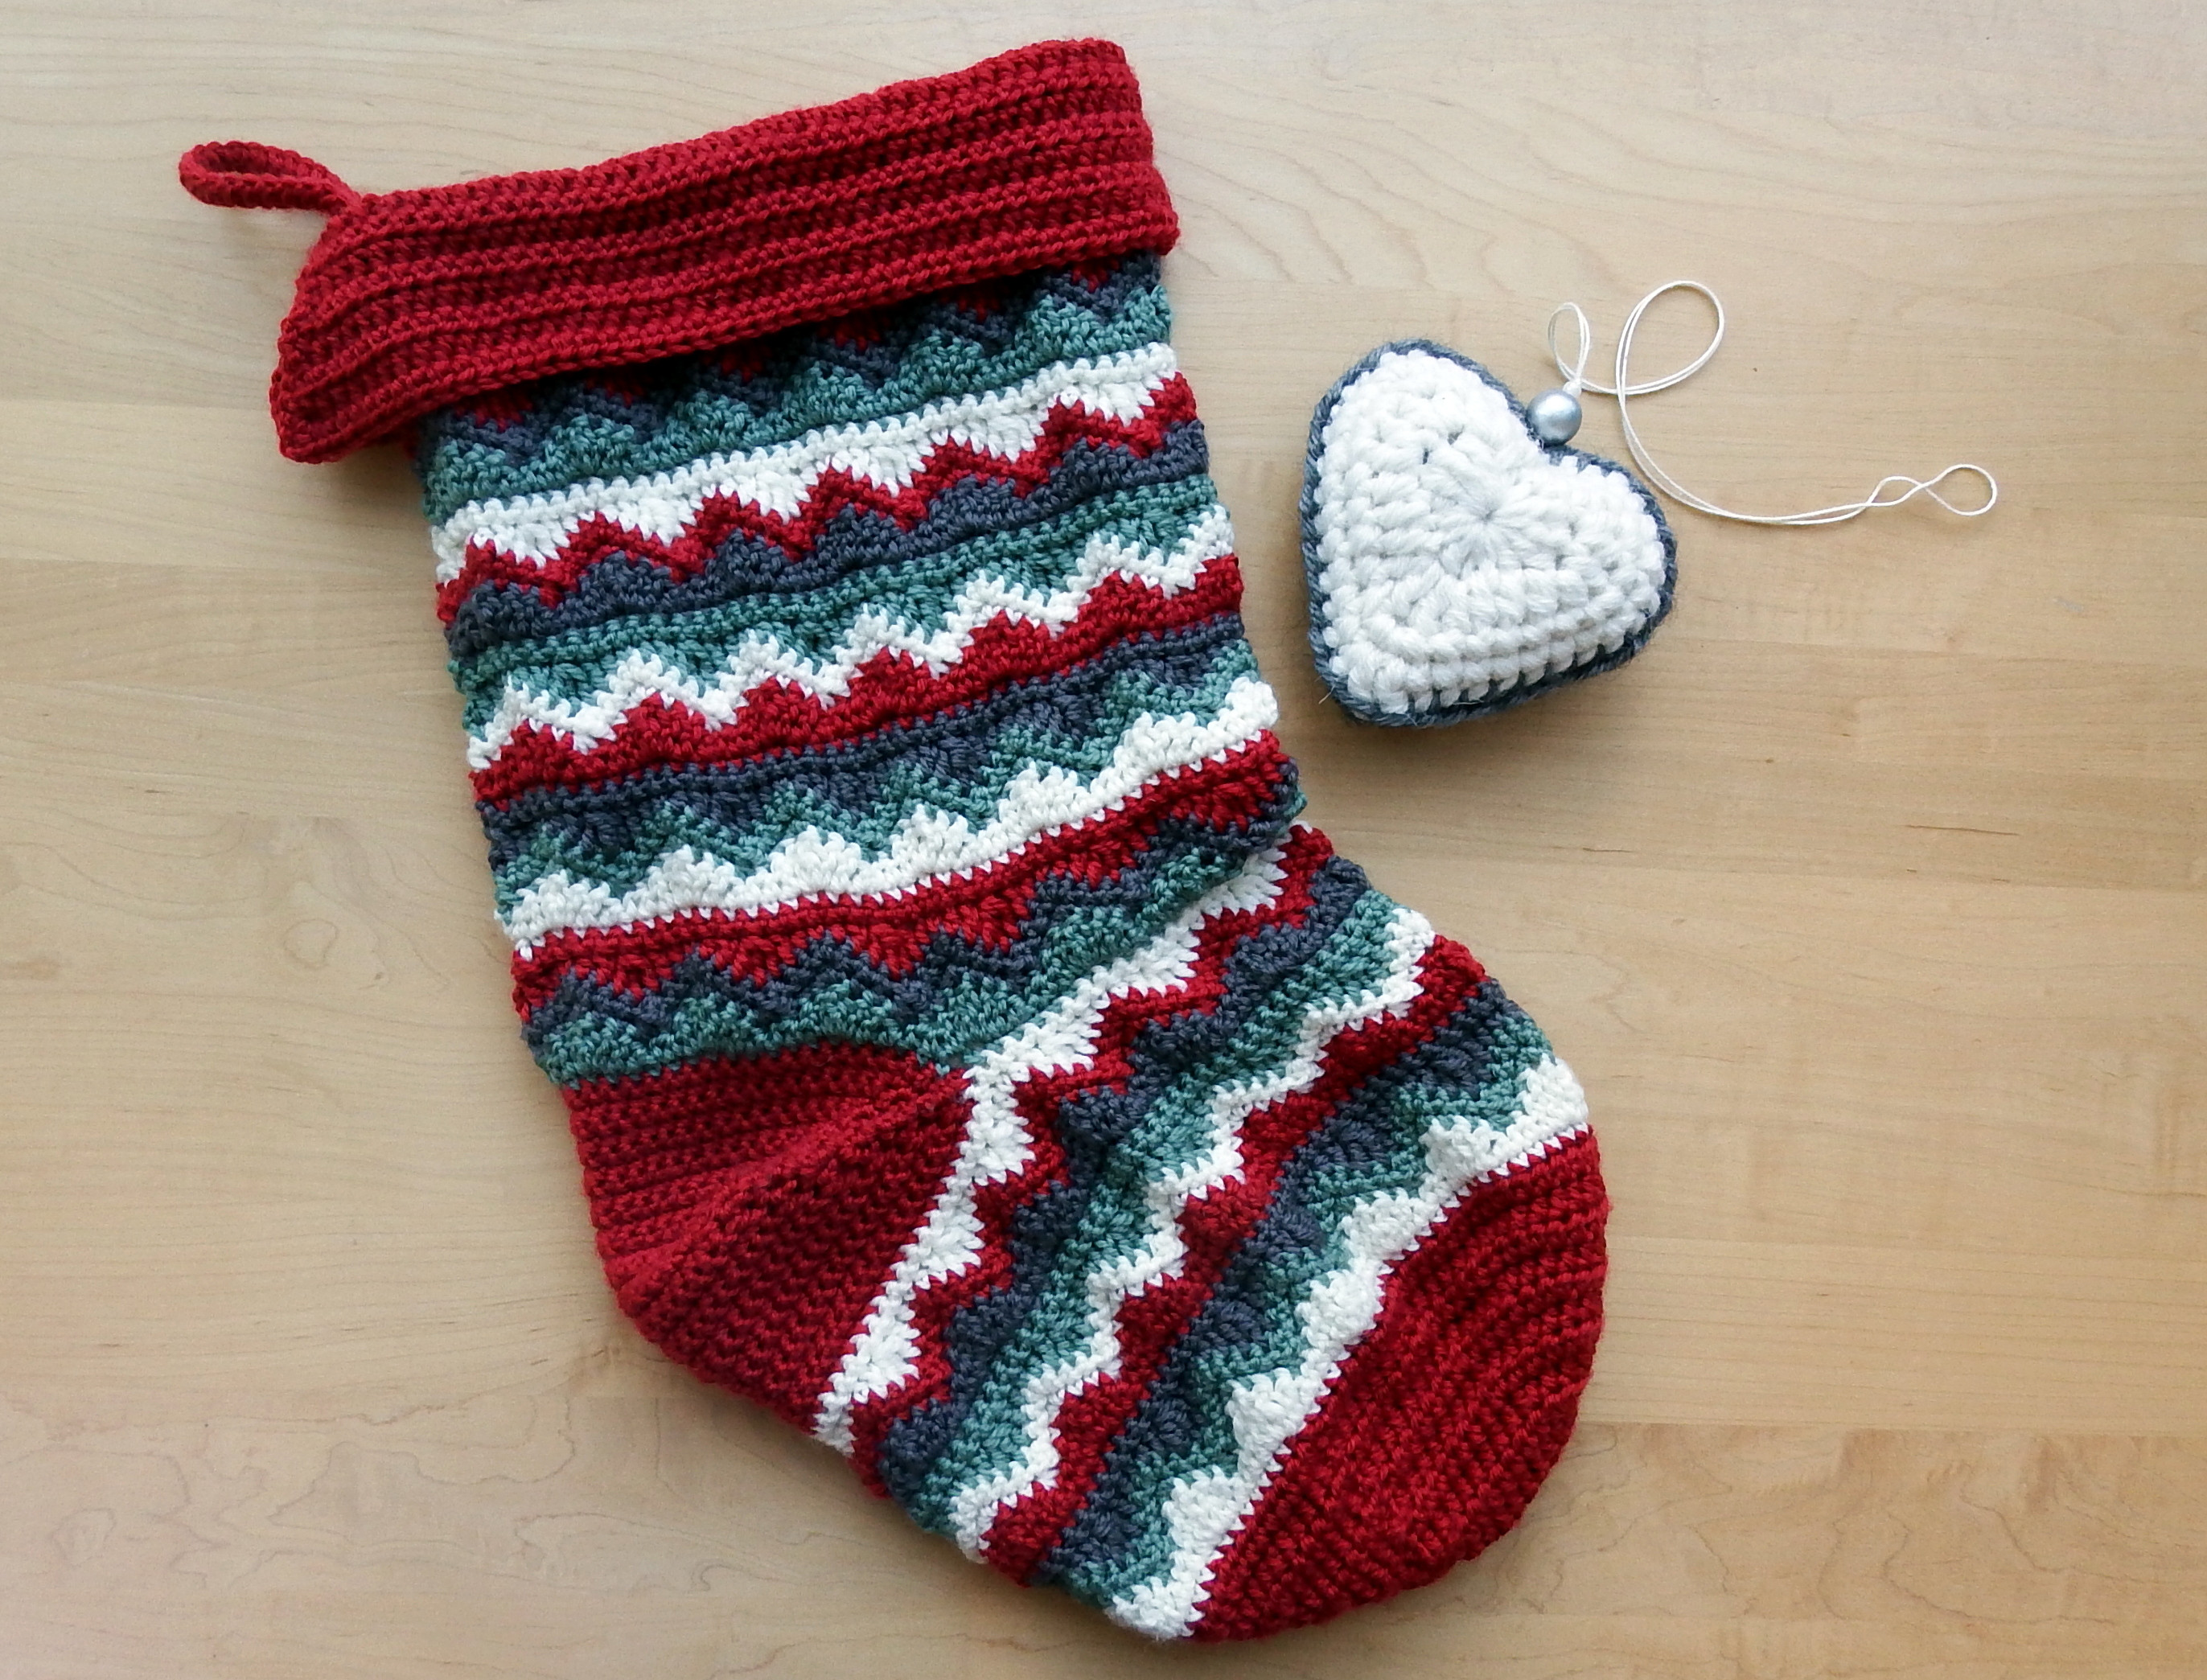 Free Crochet Christmas Stocking Patterns Best Of Christmas Stocking Of Top 44 Photos Free Crochet Christmas Stocking Patterns